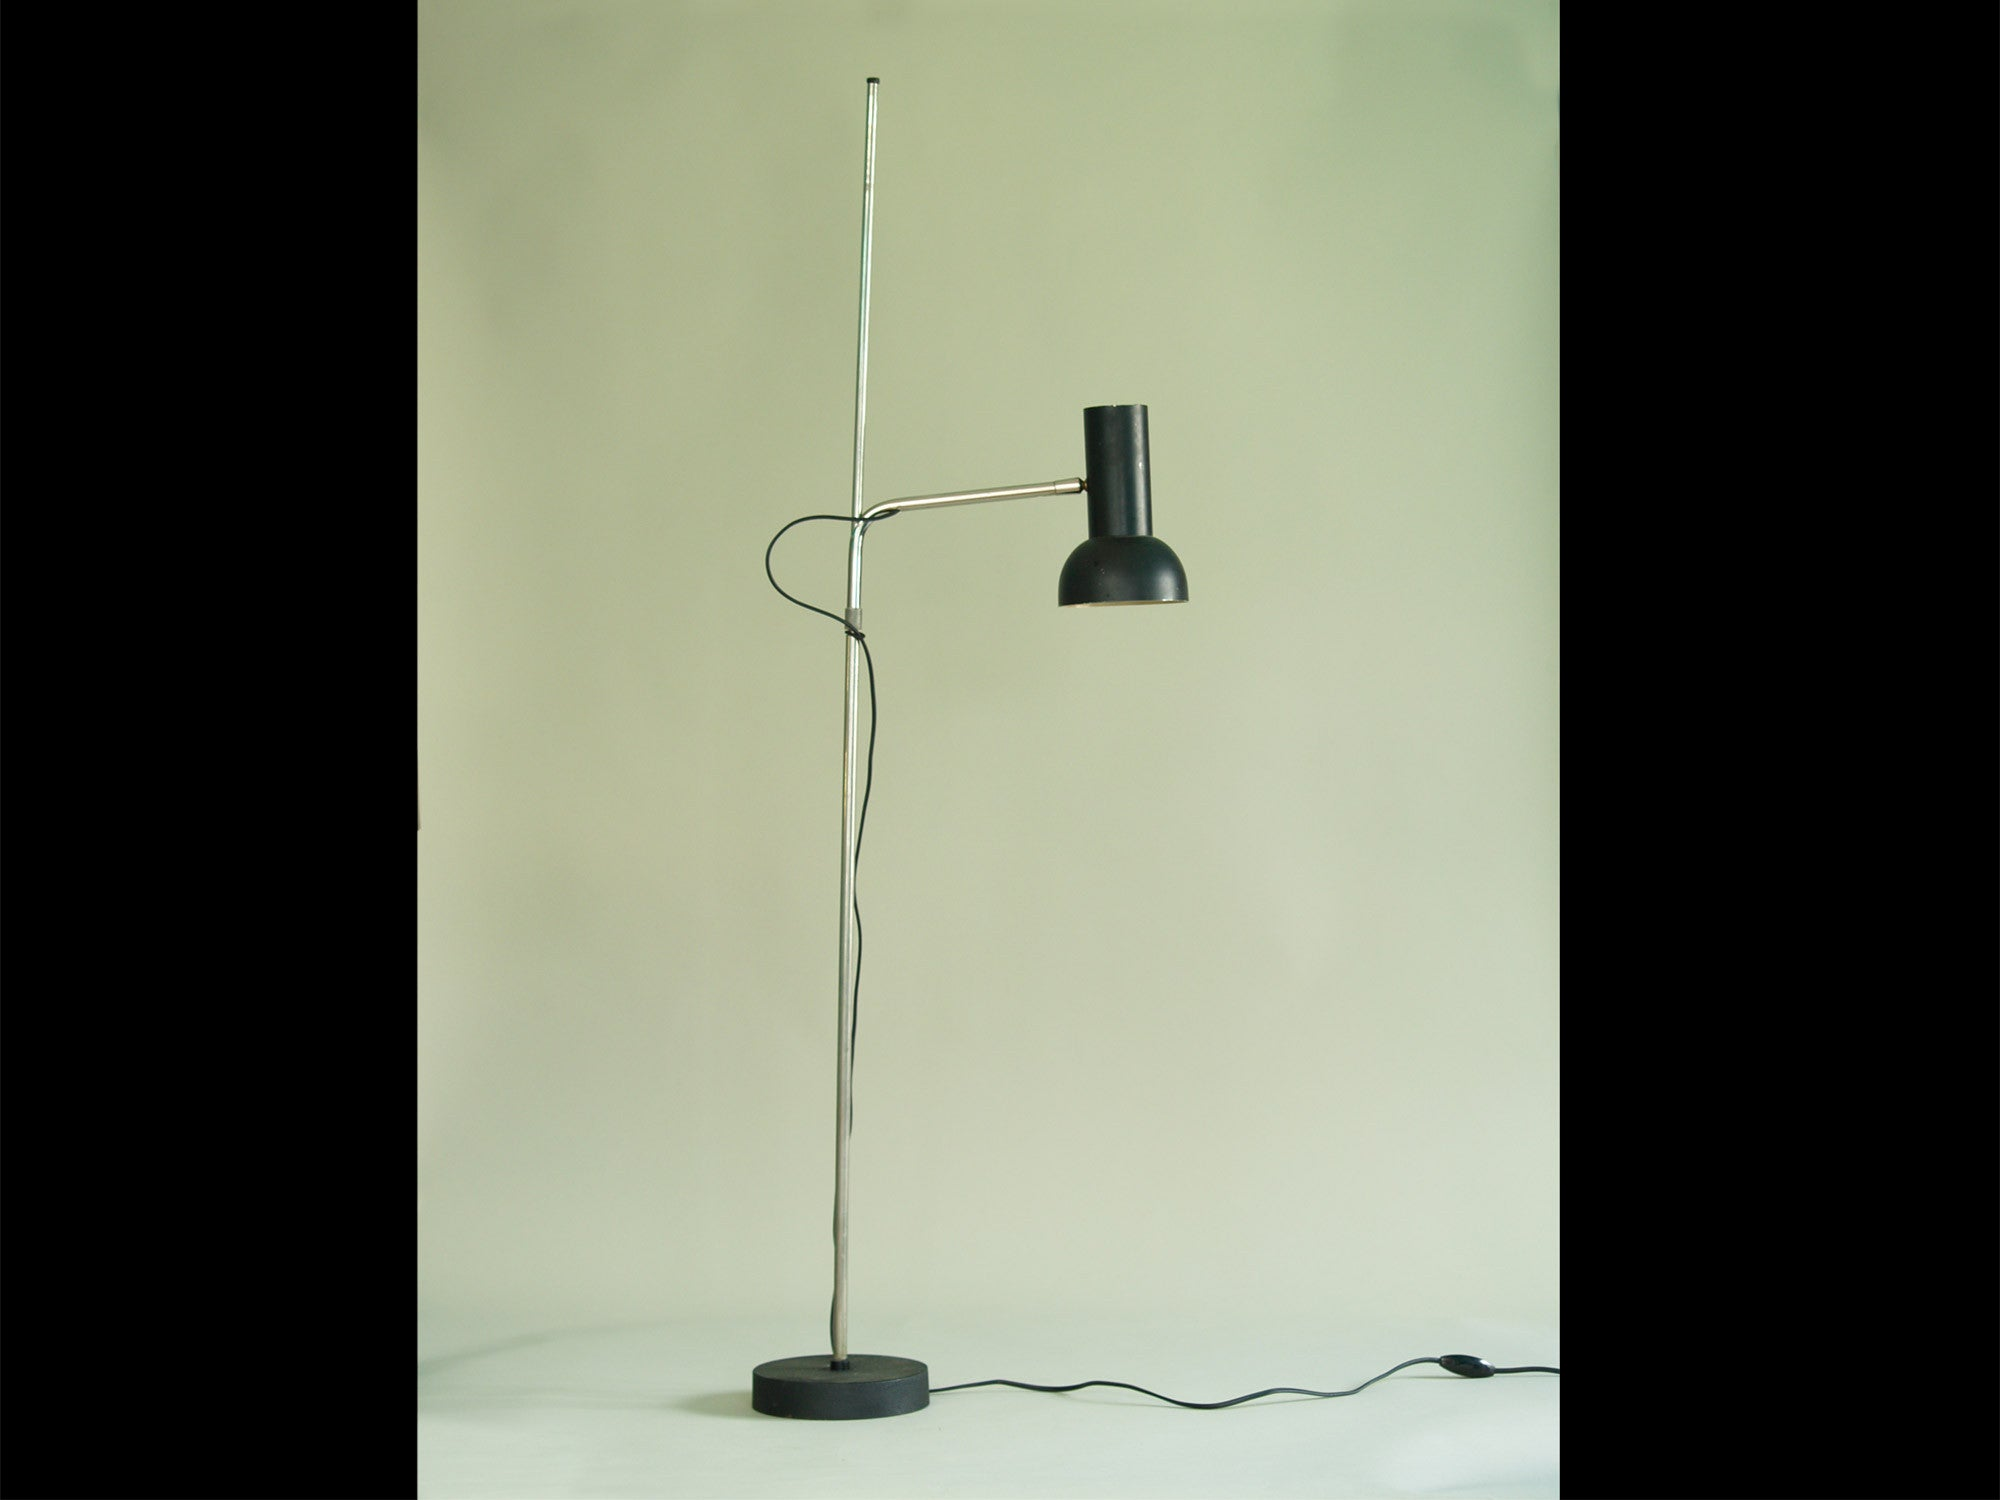 Lampadaire réglable / liseuse moderniste, France (vers 1960)..Modernist floor lamp, France (circa 1960)